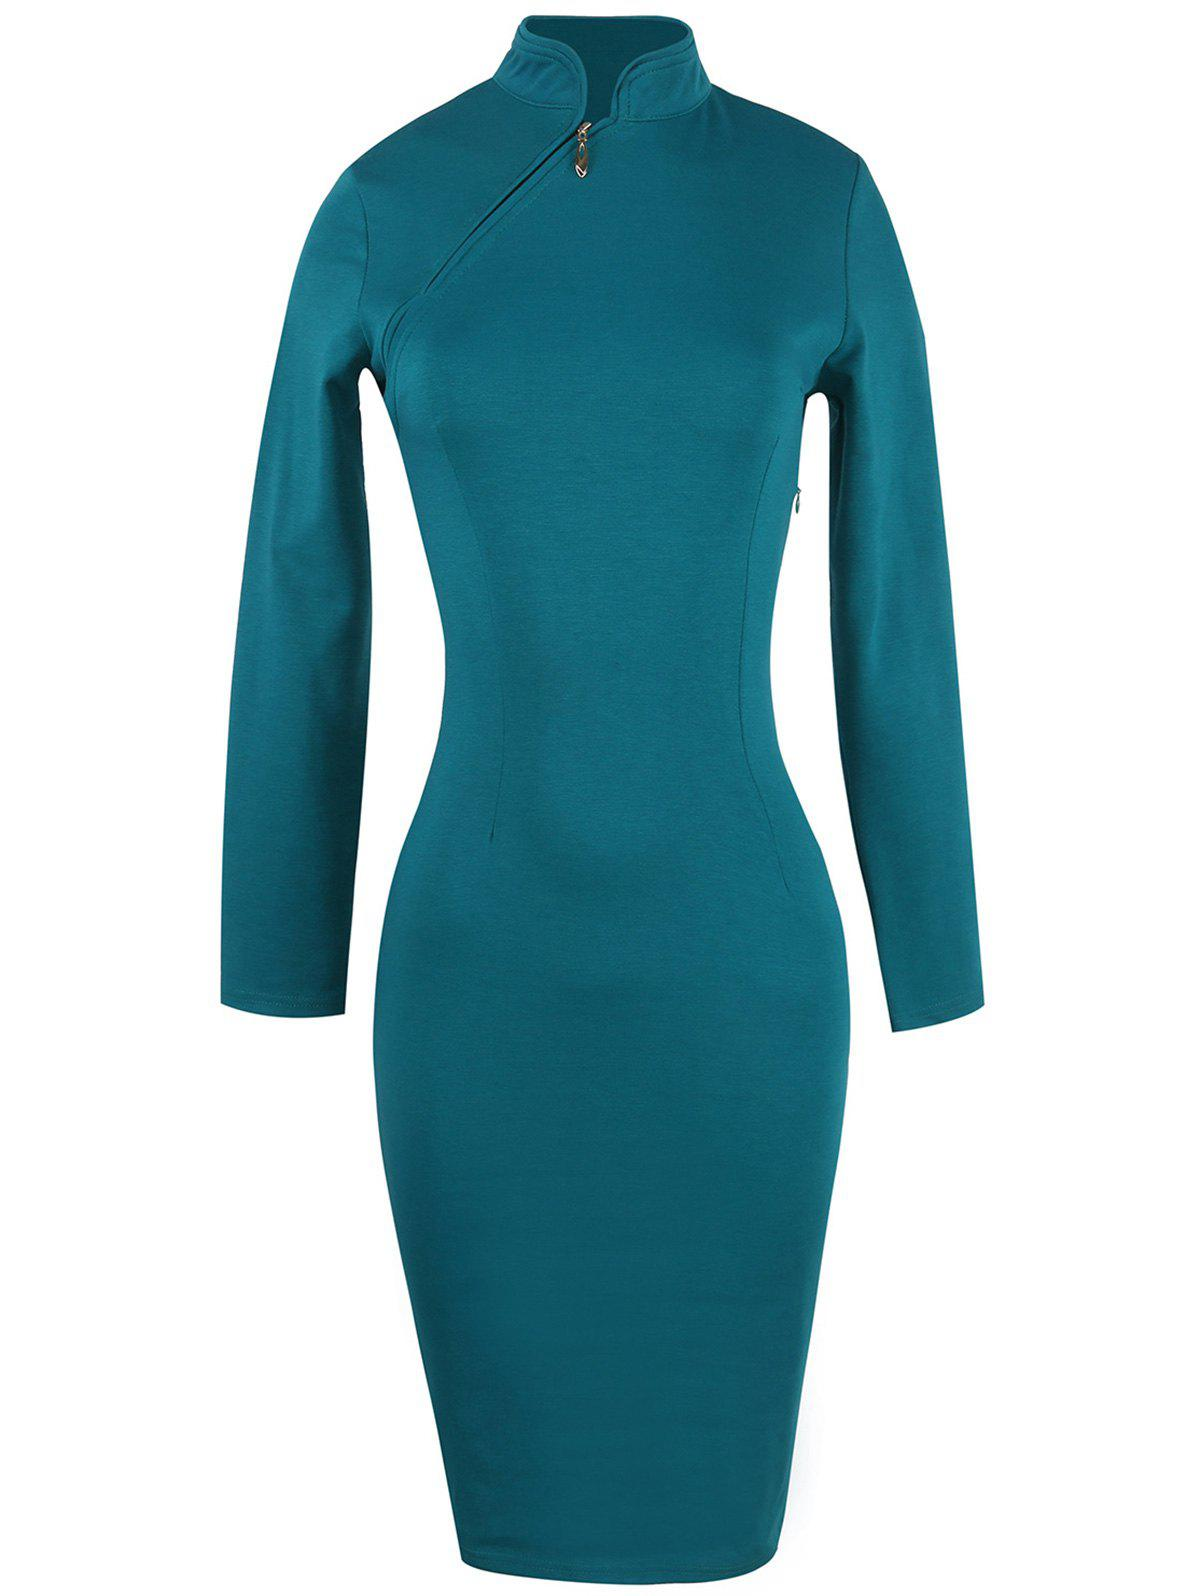 Robe chinoise à manches longues - Turquoise L